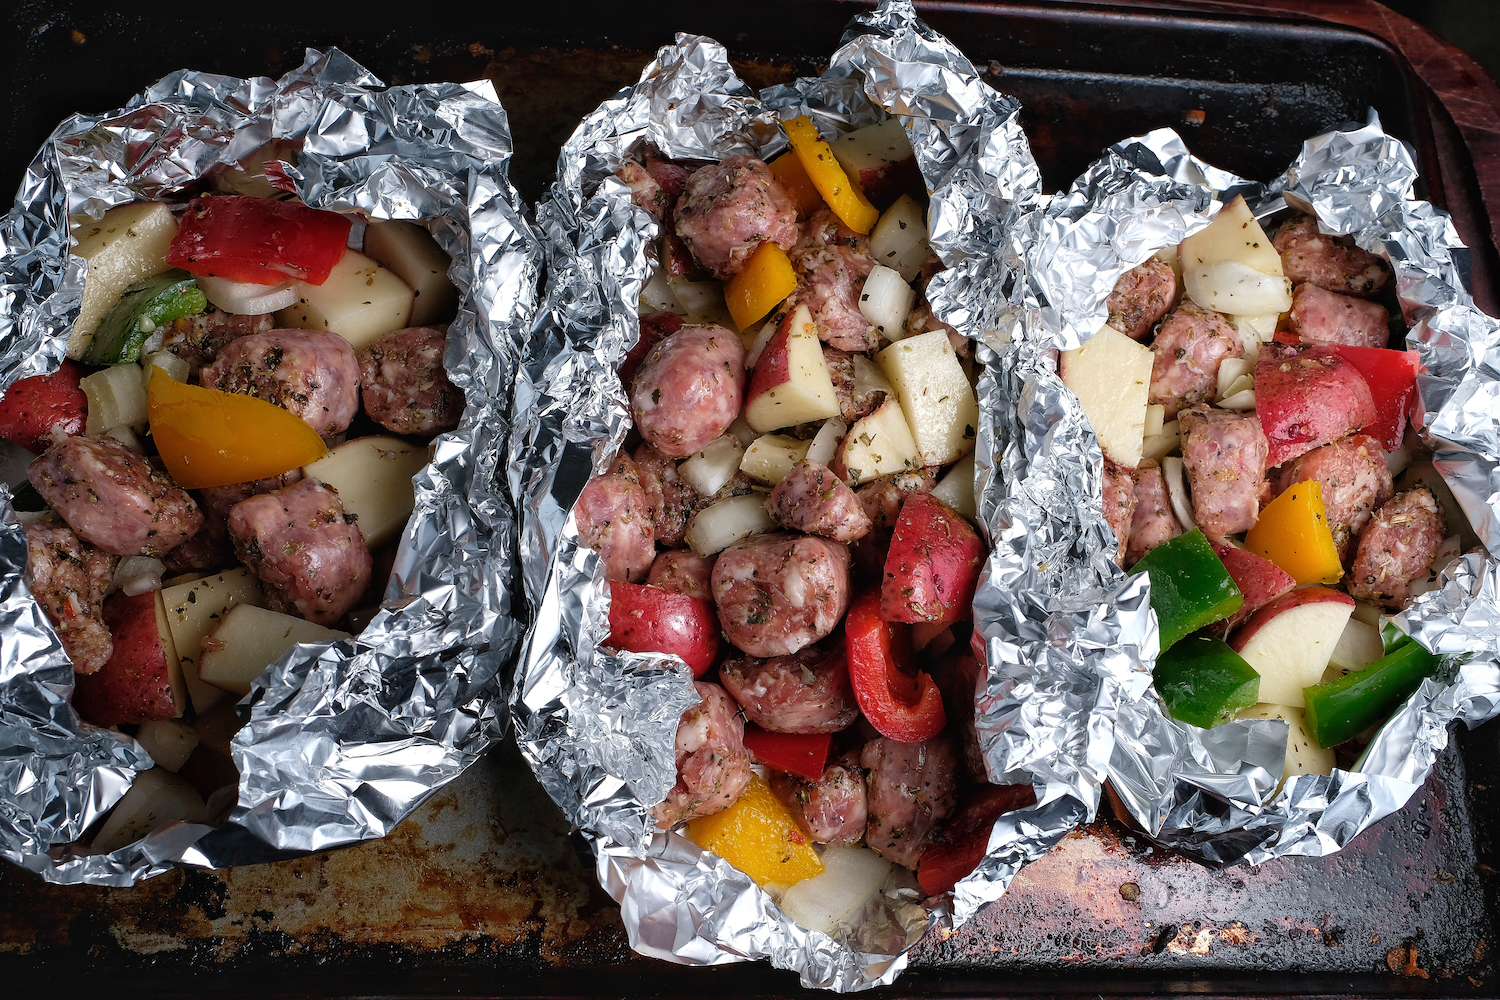 Three foil packets with cut sausages, vegetables, oil and pieces ready to put in oven or grill